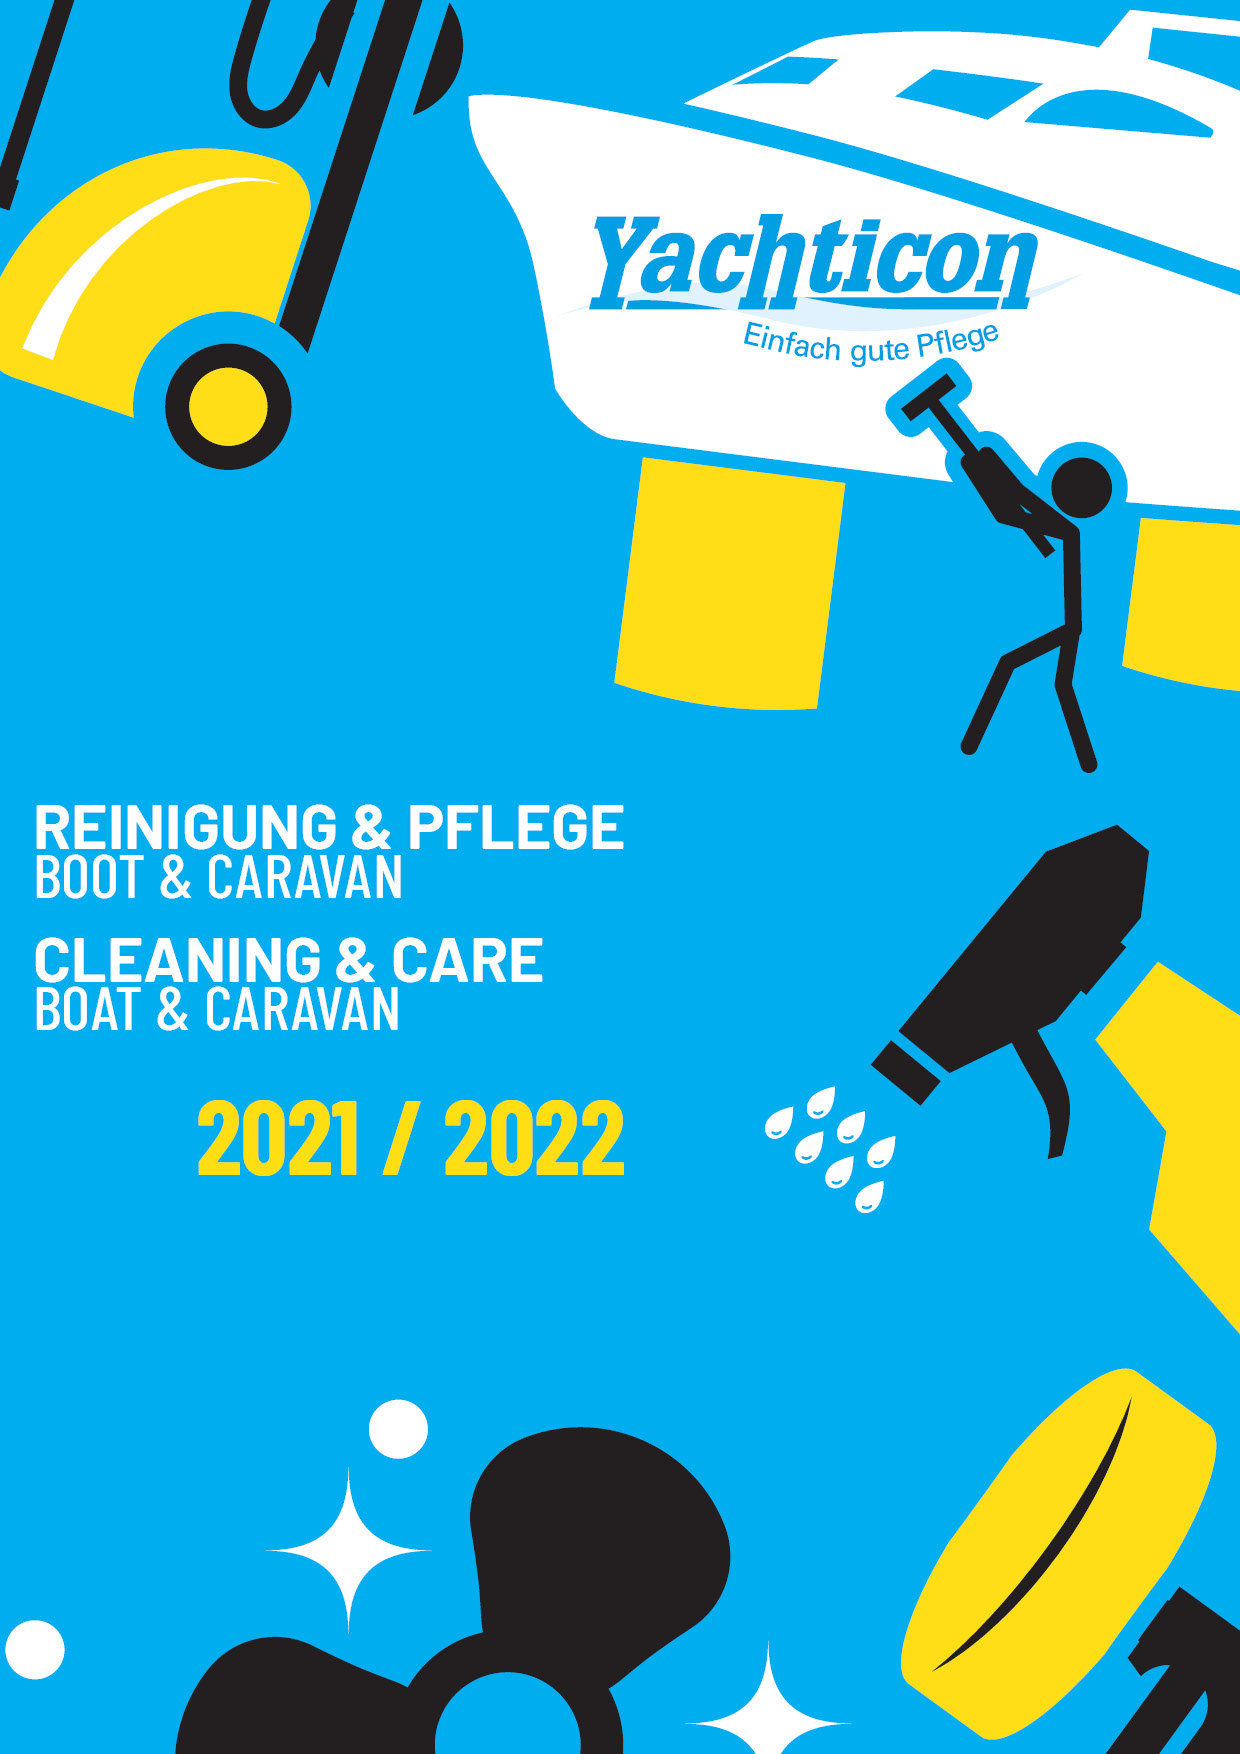 Yachticon Katalog 2021/2022